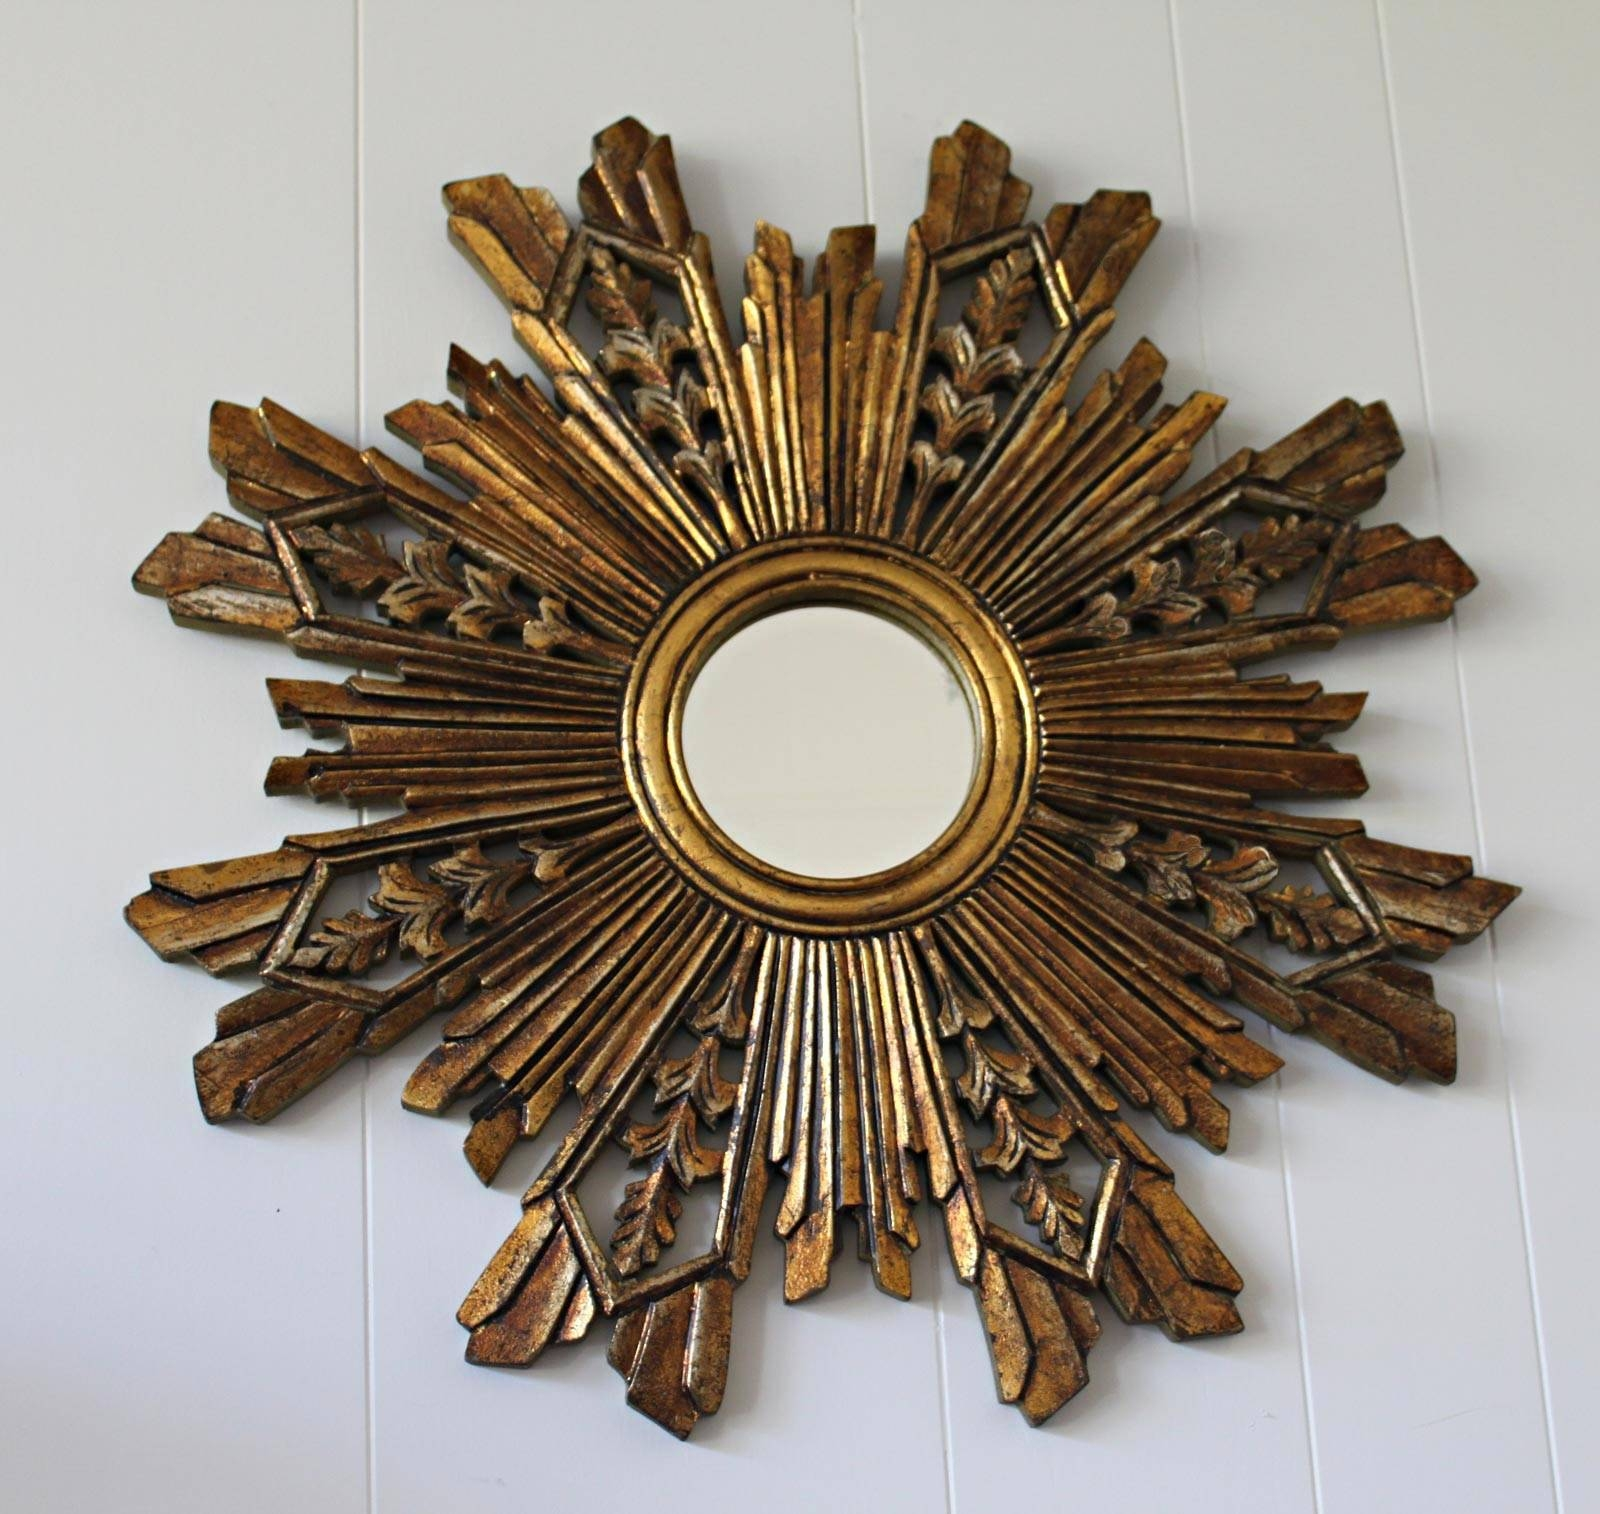 Decorating: Pretty Gold Sunburst Mirror For Wall Accessories Ideas throughout Bronze Starburst Mirrors (Image 7 of 25)